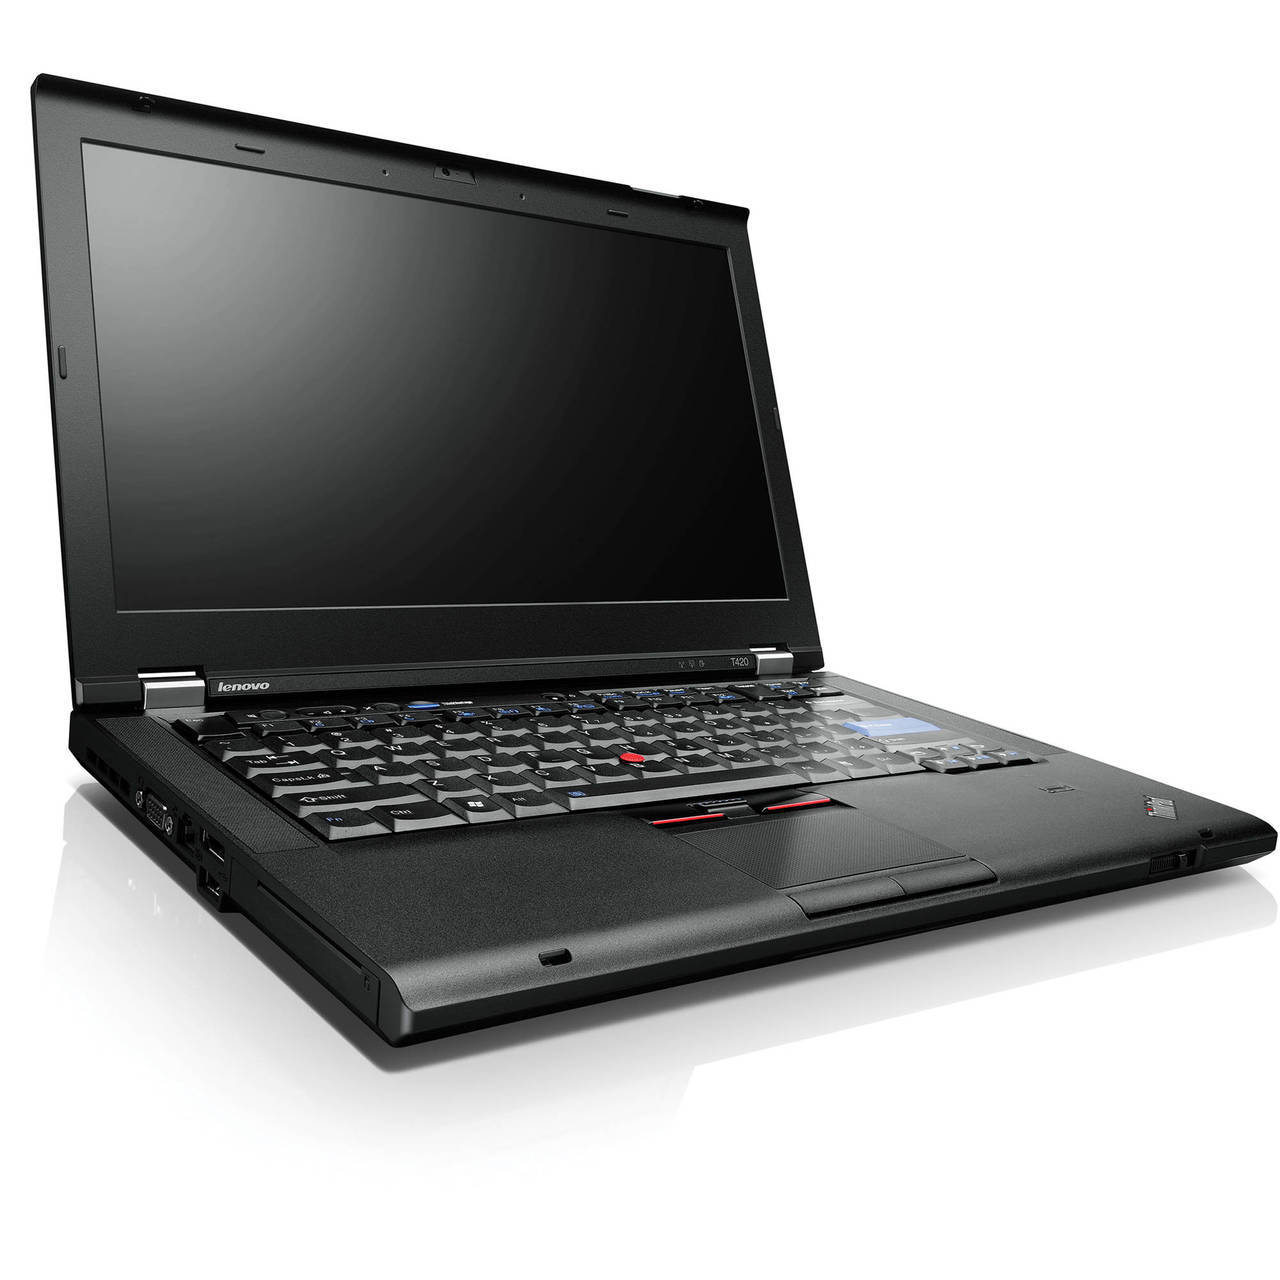 Lenovo ThinkPad T420 - Windows 10